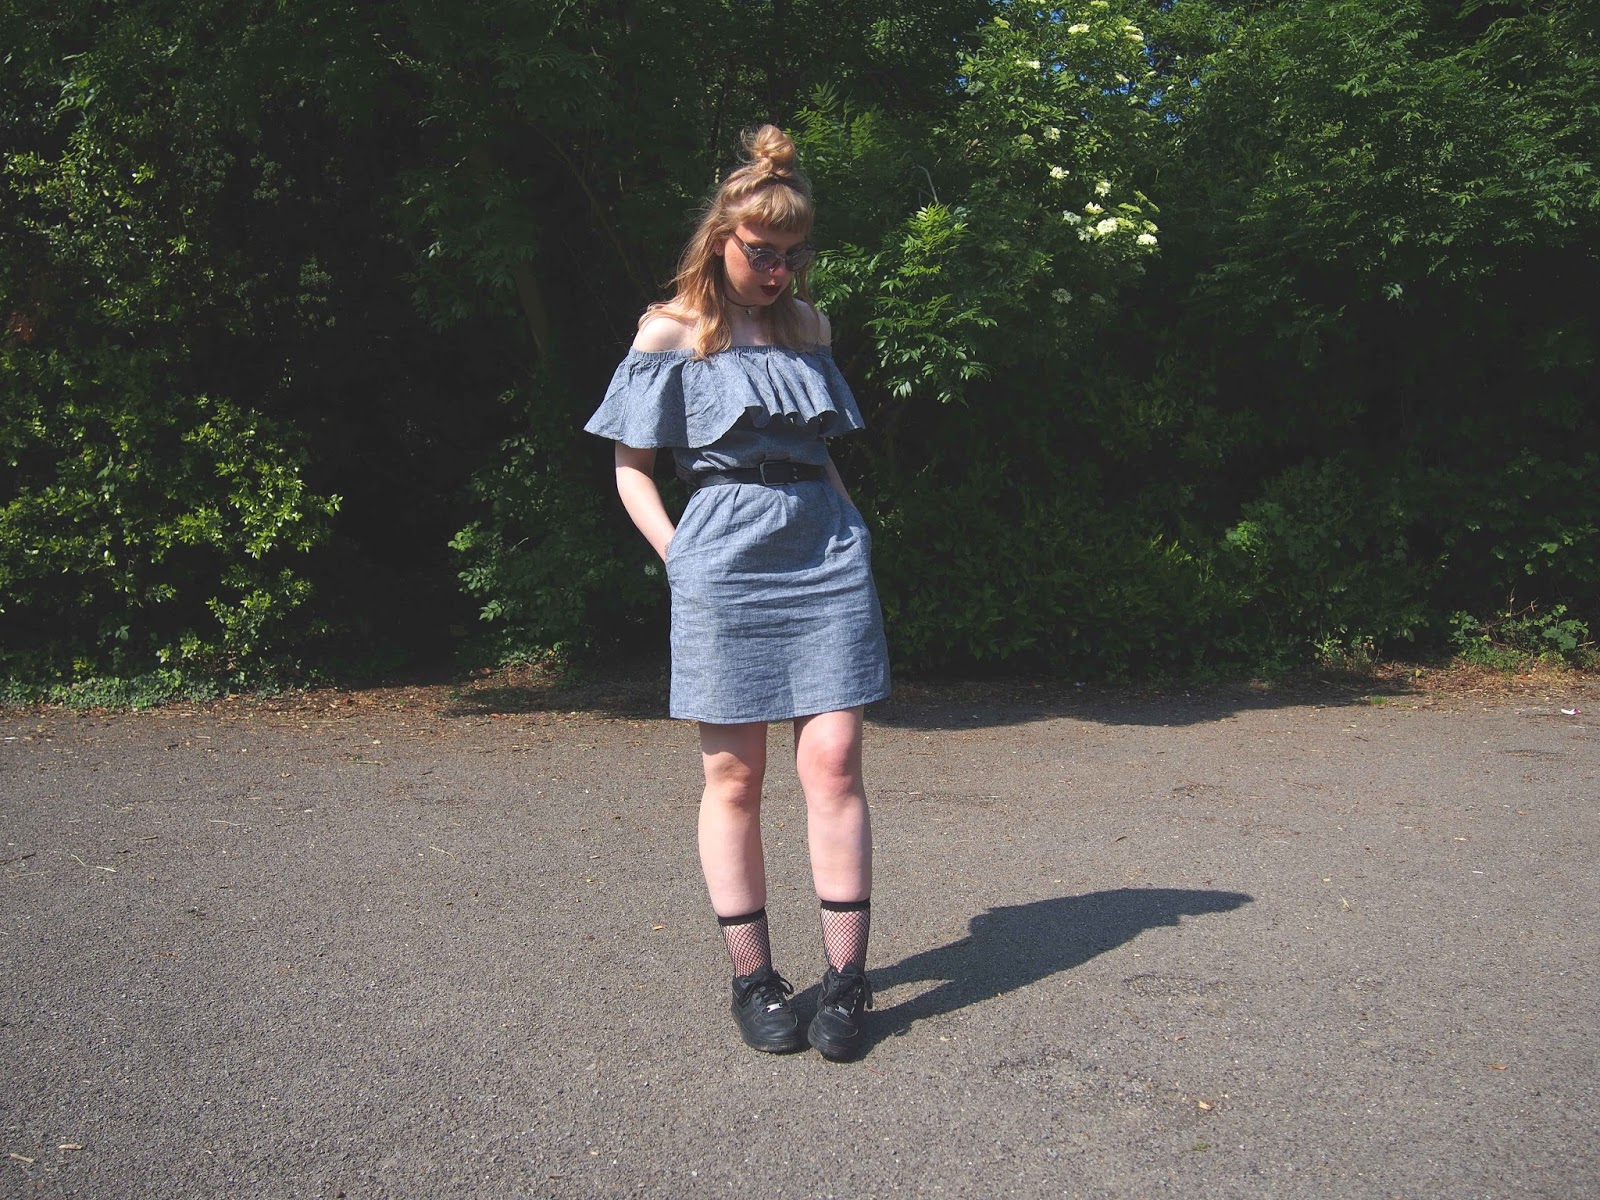 bardot ruffle dress, frilly dress, frills, warehouse house of fraser dress, off the shoulder dress, spring summer outfit, choker, nike air force 1's, fishnet socks, grunge alternative unique style inspiration 0